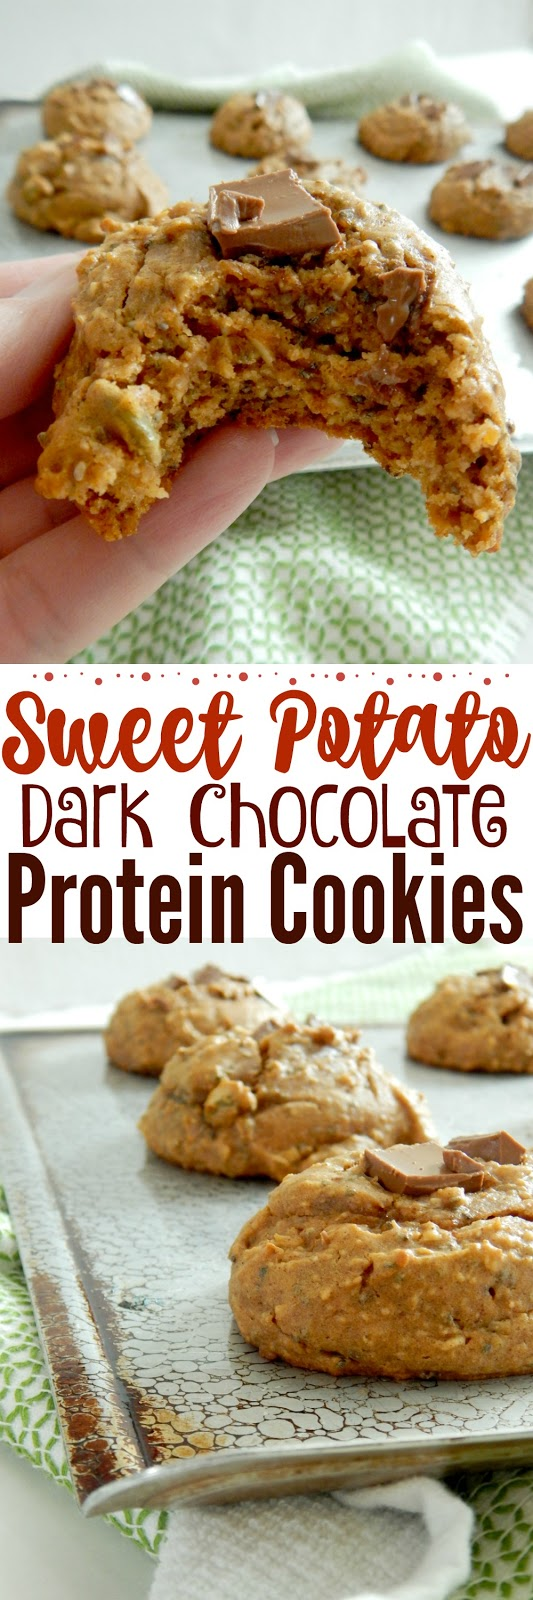 Sweet Potato Dark Chocolate Protein Cookies....the perfect morning breakfast or afternoon snack.  With 6 grams of protein they are enough to keep you full, yet are not full of refined sugar.  Also a great after school snack for kids! (sweetandsavoryfood.com)